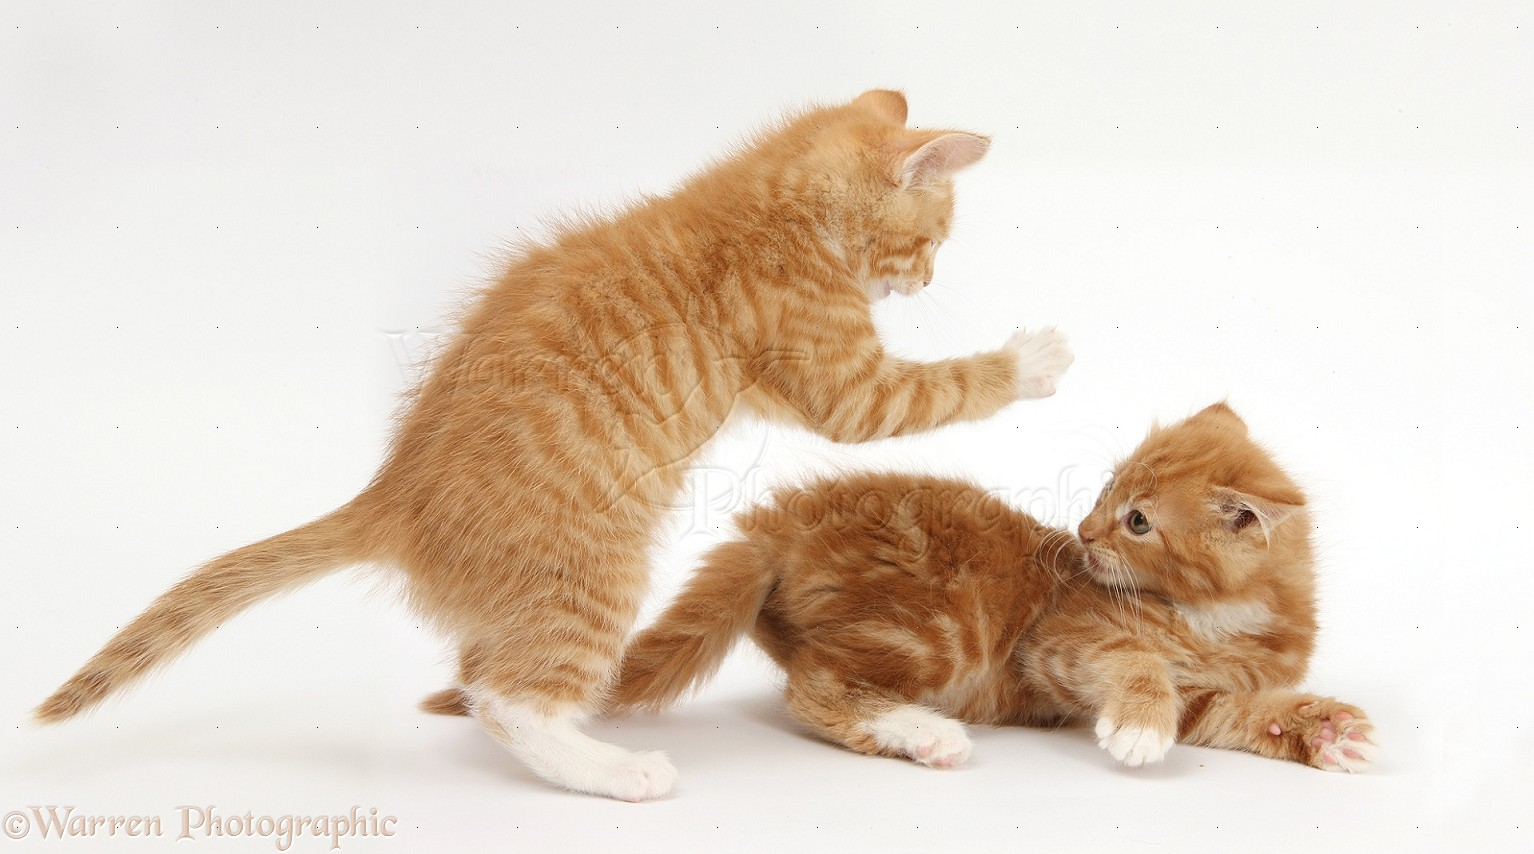 Ginger kittens play-fighting photo - WP28525